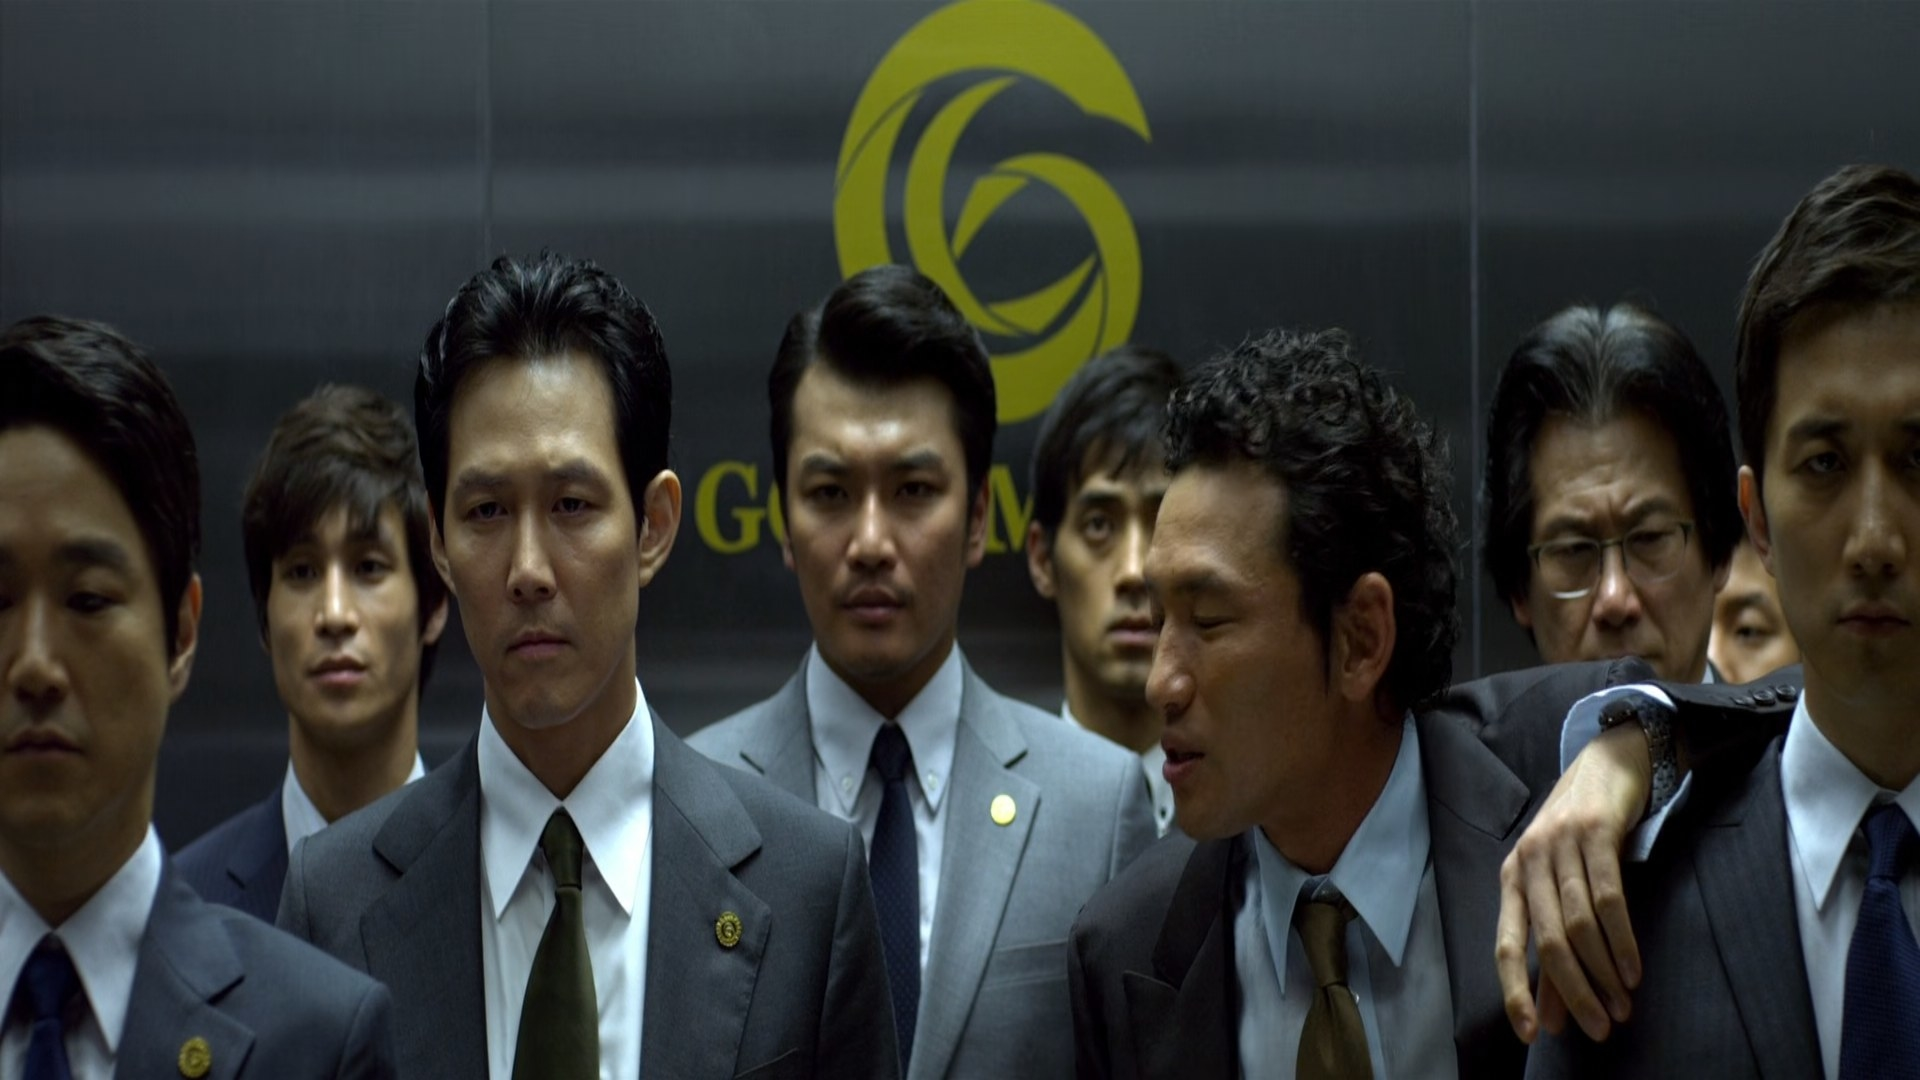 A group of men standing in an elevator.